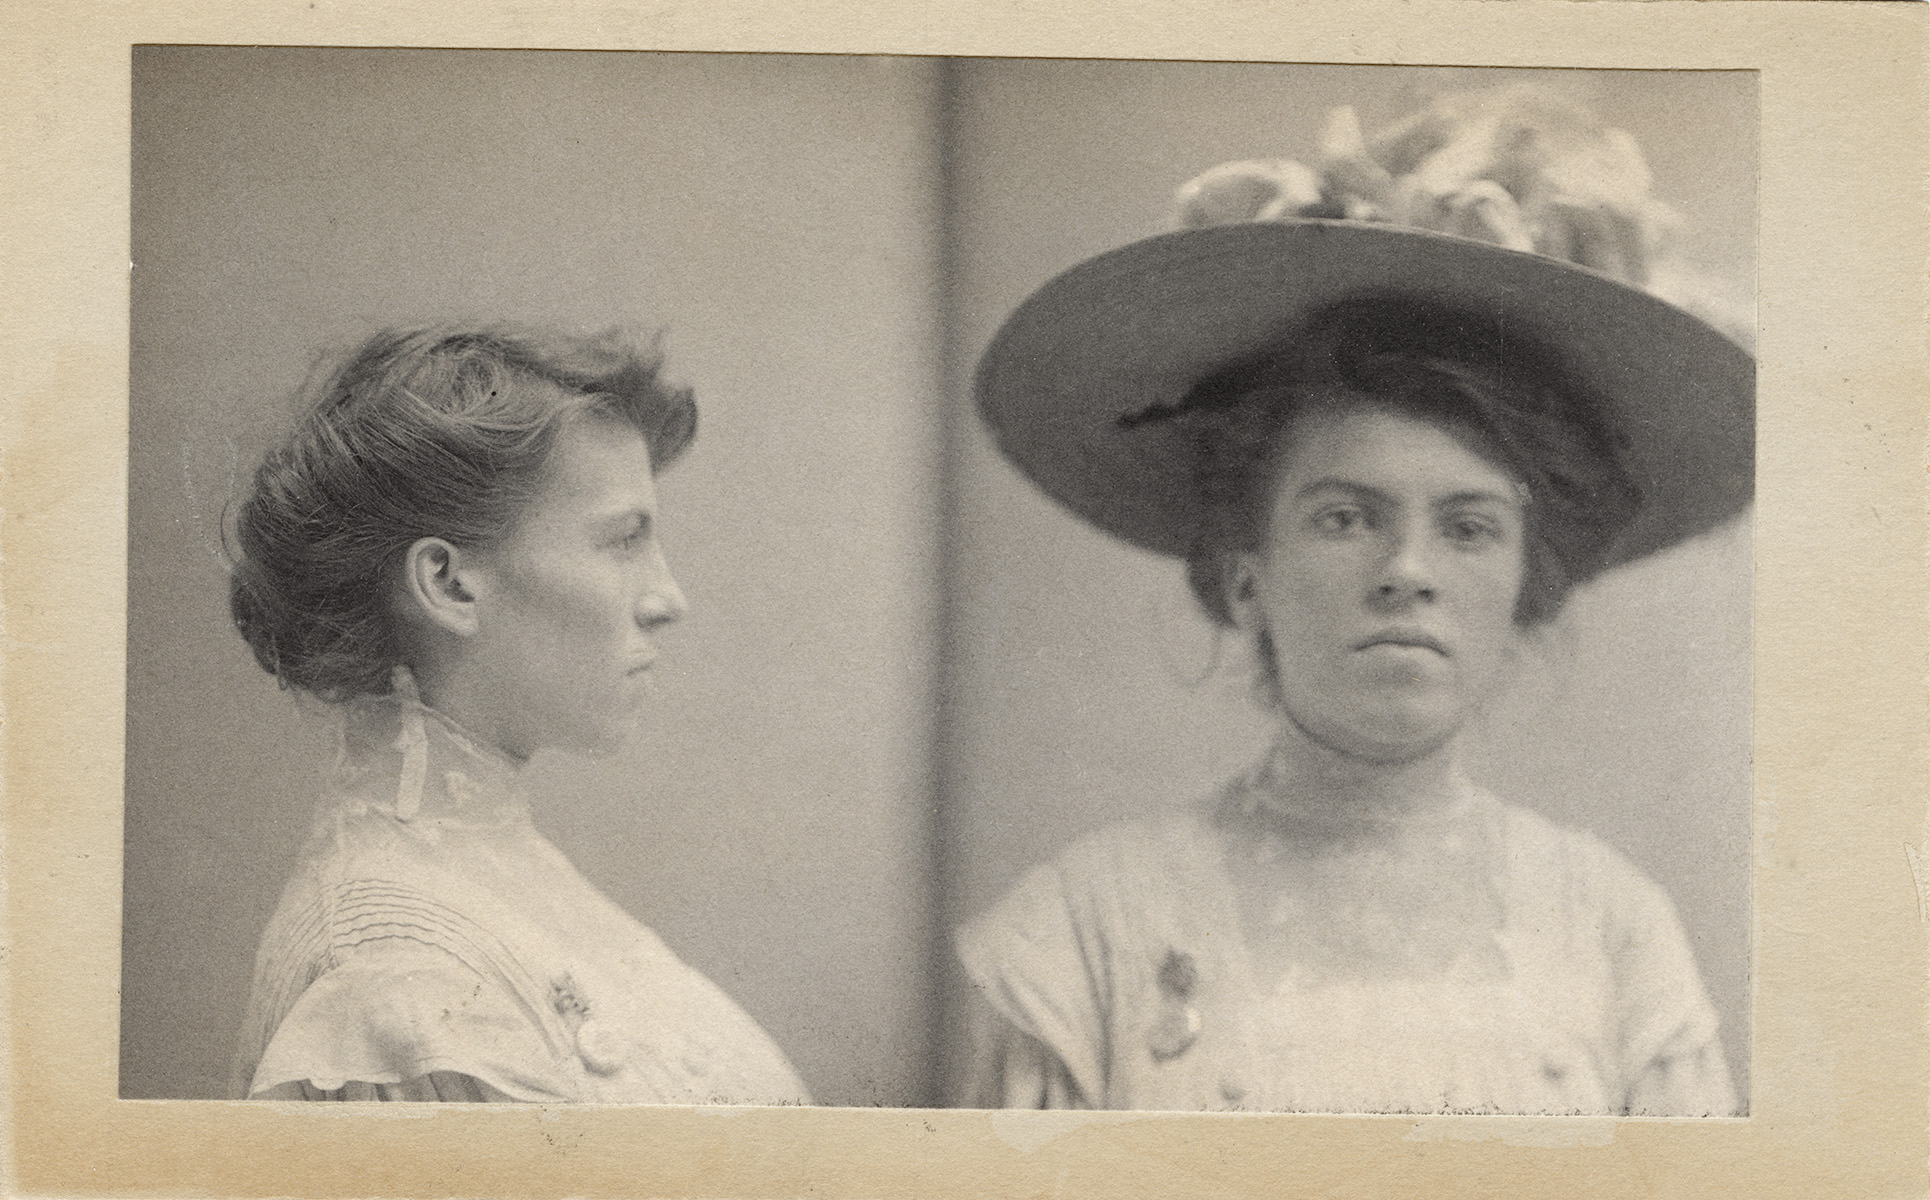 Sadie Schoen, June 25, 1908    Crime: Swindling